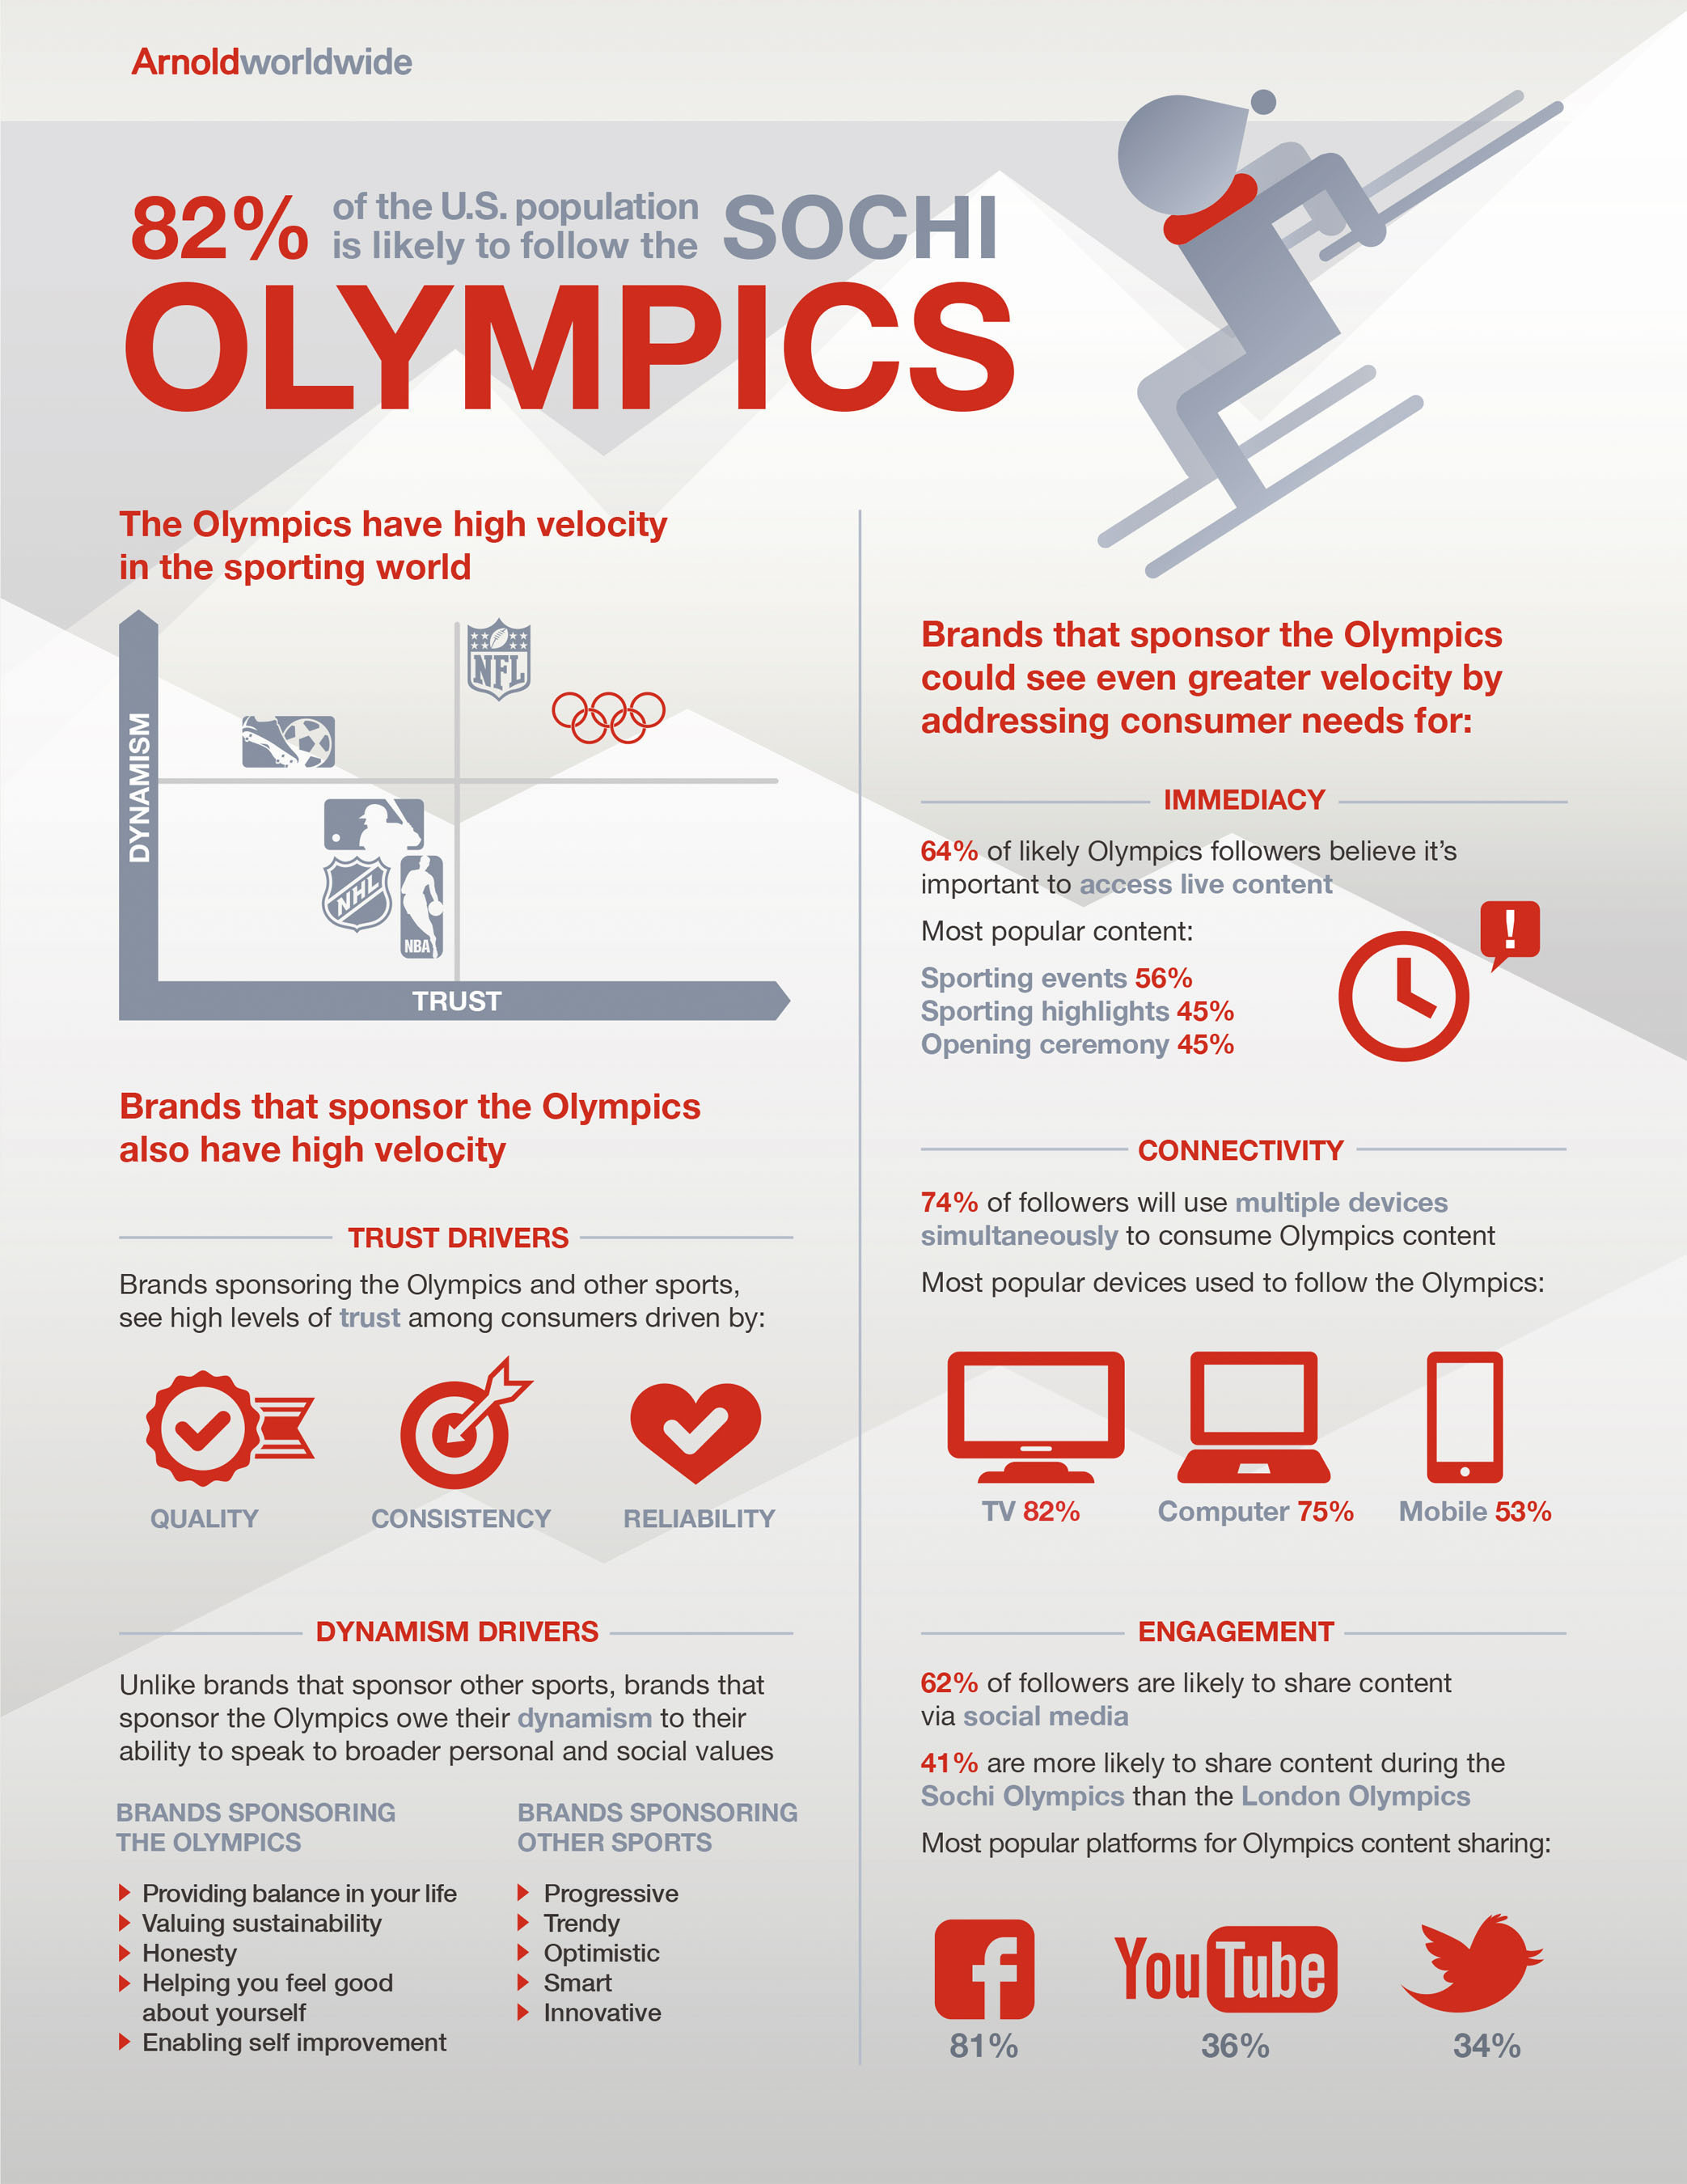 "Arnold Worldwide original research predicts gold for Sochi Olympic sponsors. Brands benefit from Olympics broad audience and halo of authenticity. ""Among sports organization, the Olympics has high velocity--more trusted than any other sports organization, with higher dynamism than all but the NFL,"" said Neela Pal, Global Director of Brand and Business Strategy. ""Both the Olympics and other sports organizations are perceived as traditional and fun, however, the Olympics is also viewed as having integrity and being authentic. With ..."